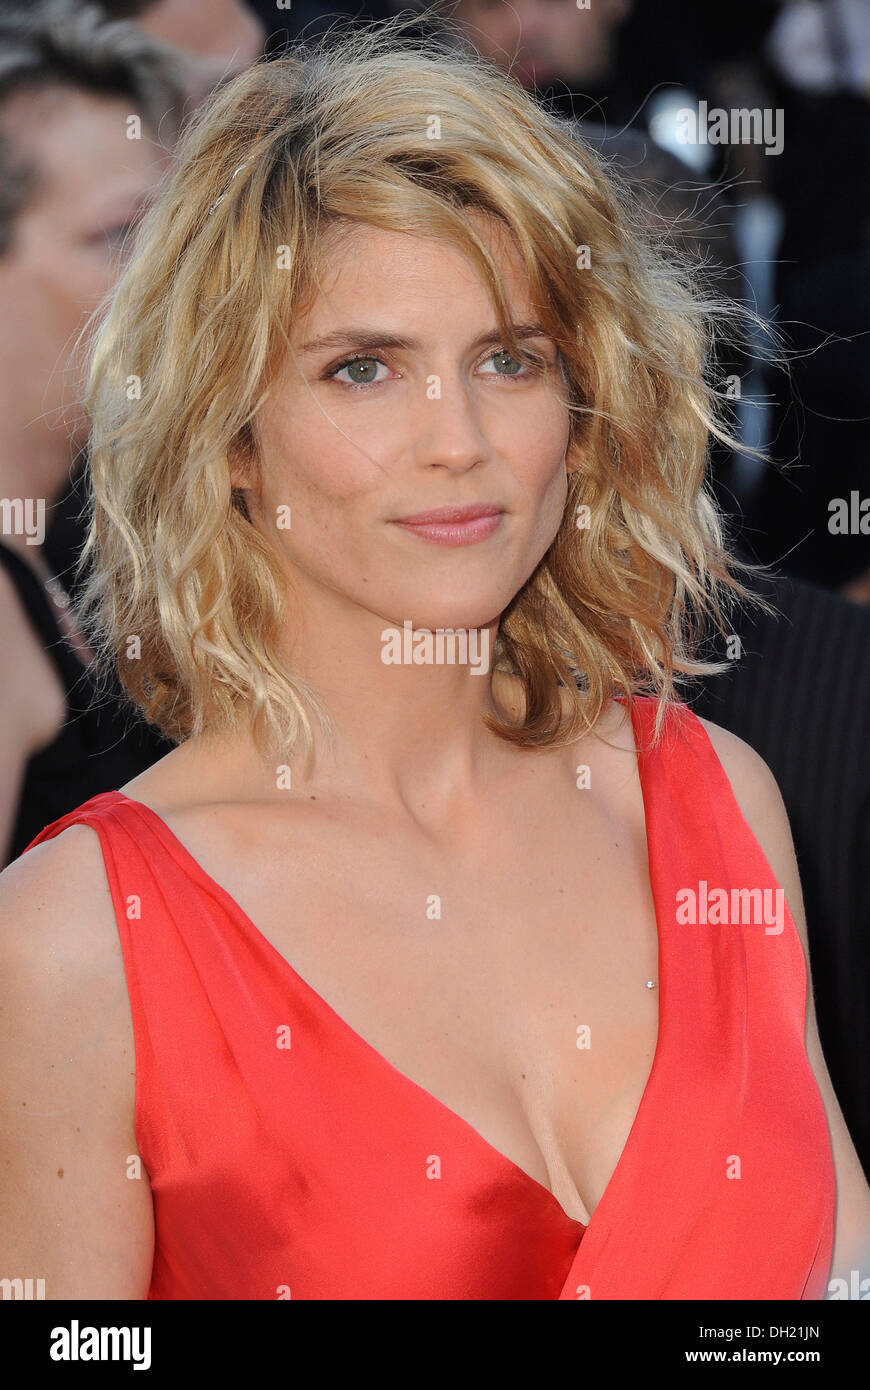 """City of Cannes: Alice Taglioni walking on the famous red carpet before the  screening of """"Blood Ties"""" on 2013/05/20"""